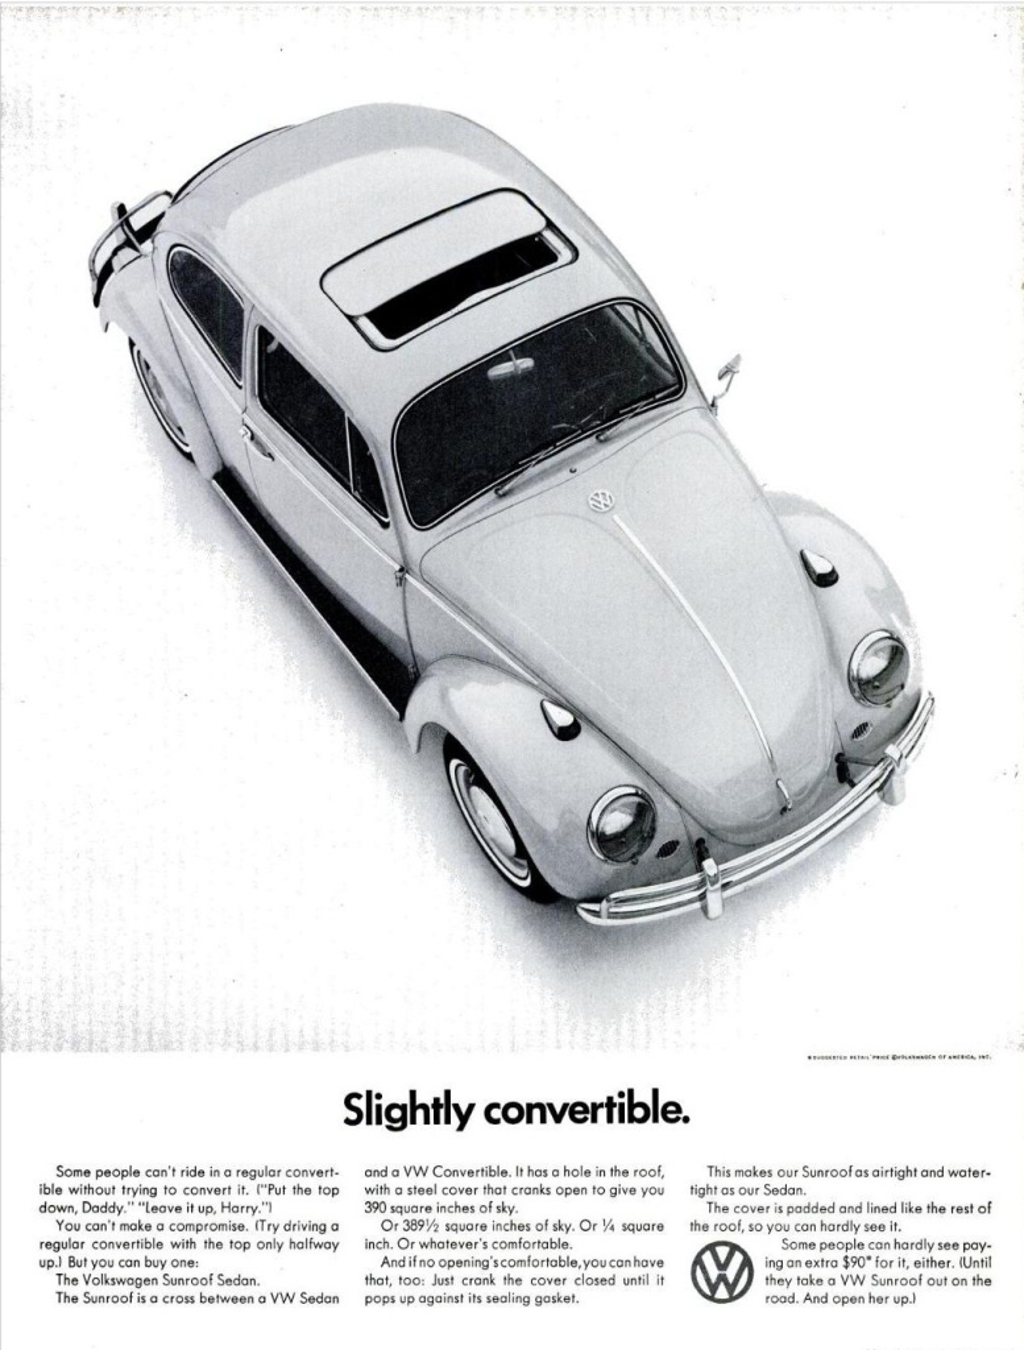 Comparing the Ford advertisement and the Volkswagen one we see the attraction of the small car - its just not about showmanship. (Picture courtesy buzzfeed.com)